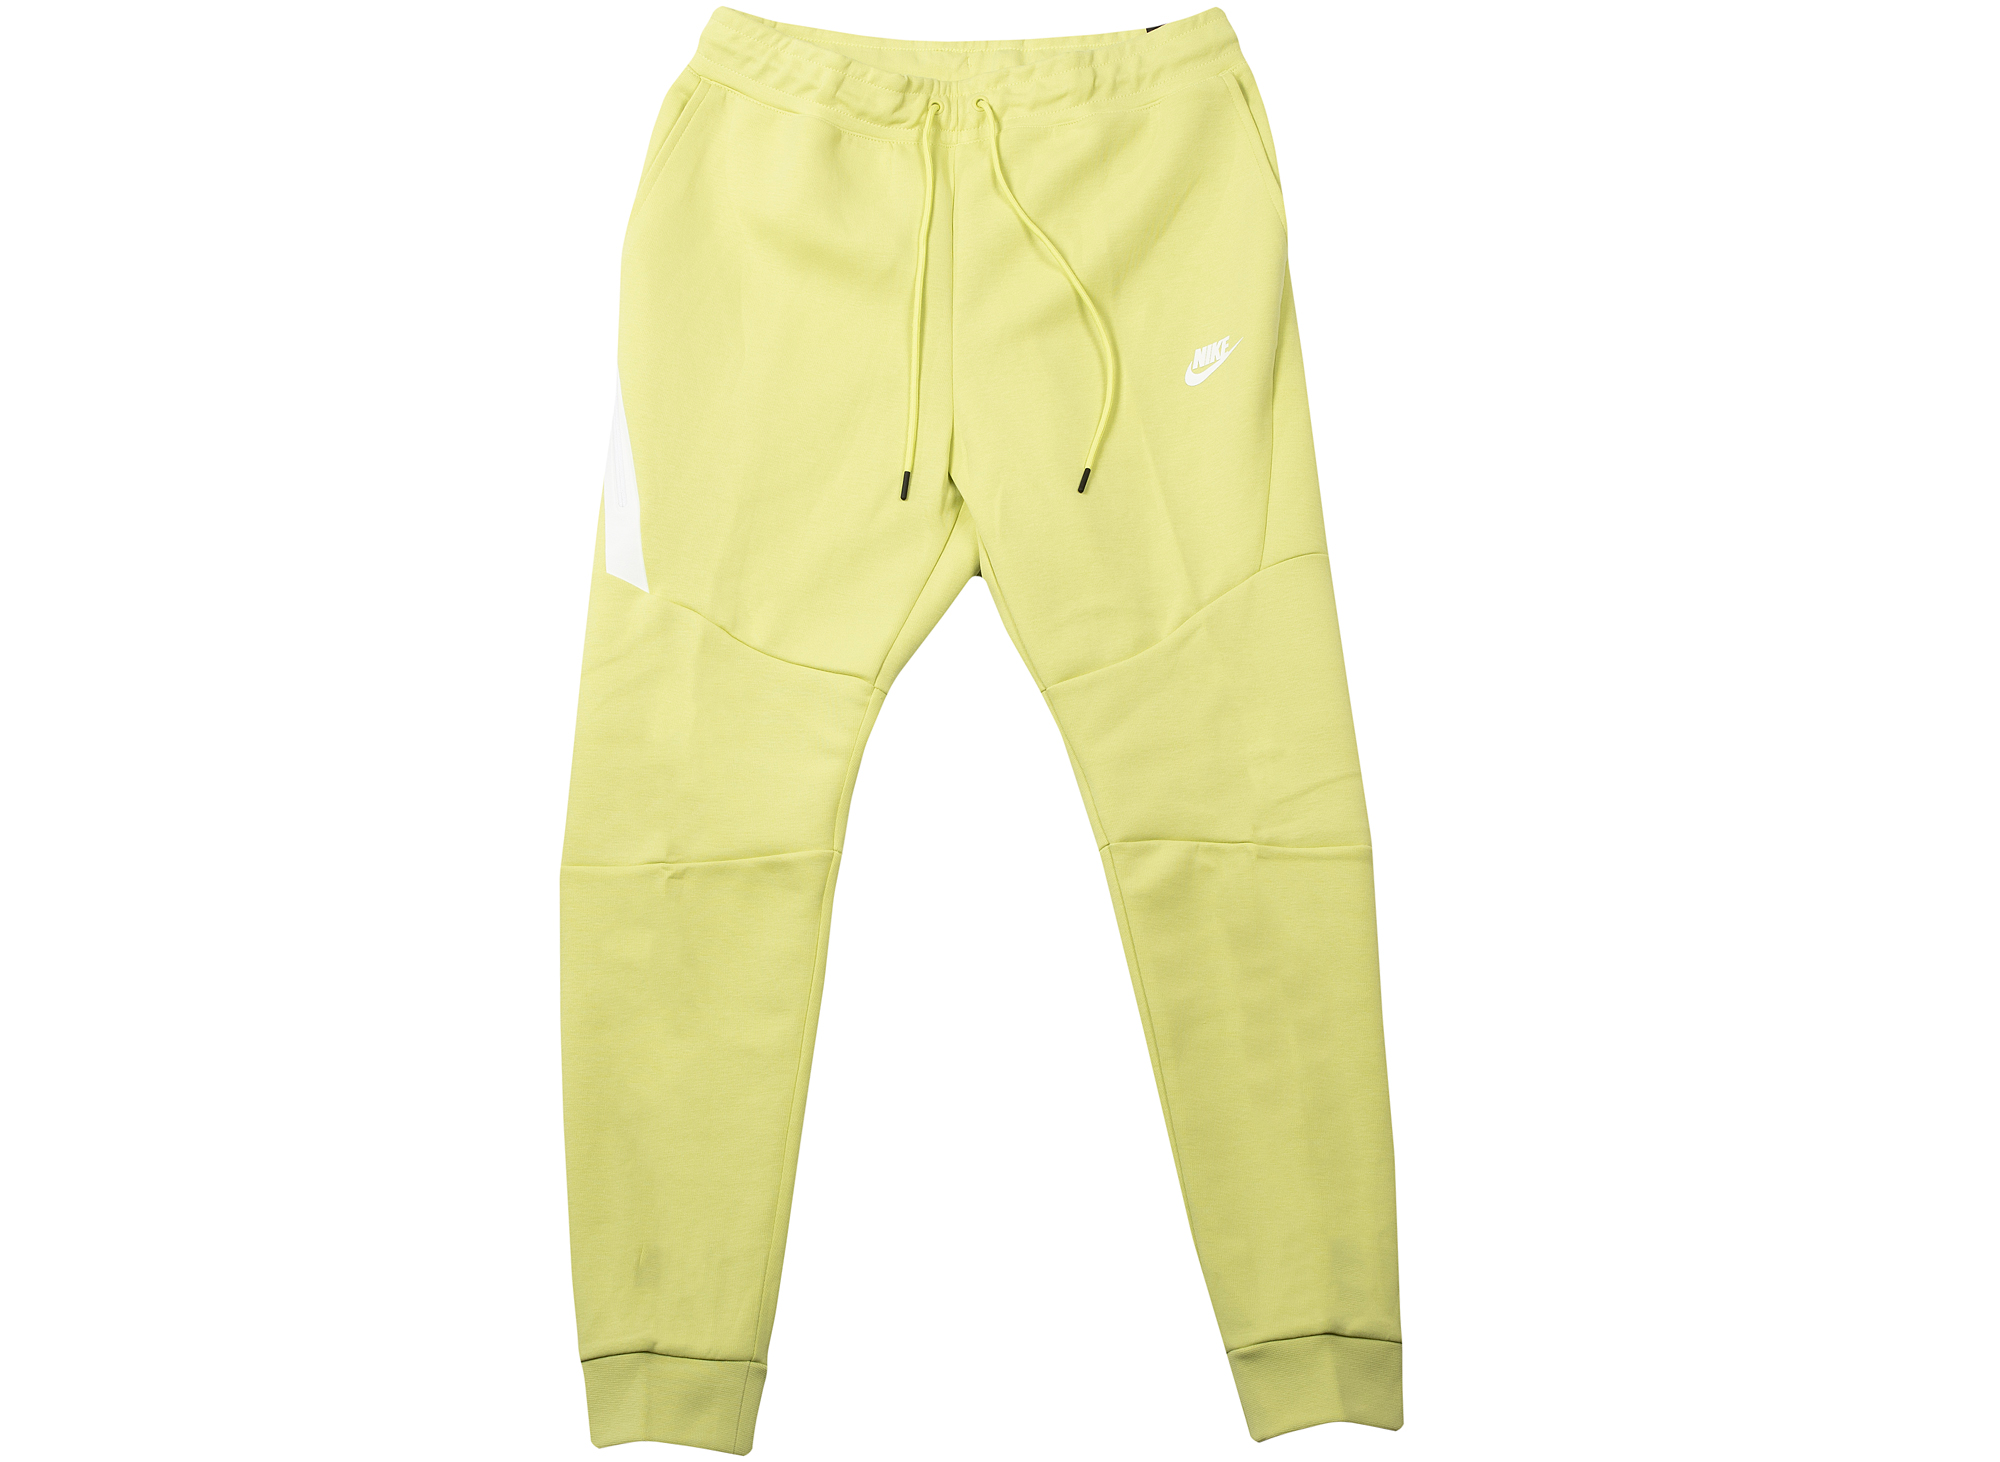 Men's Nike Sportswear Tech Fleece Pants